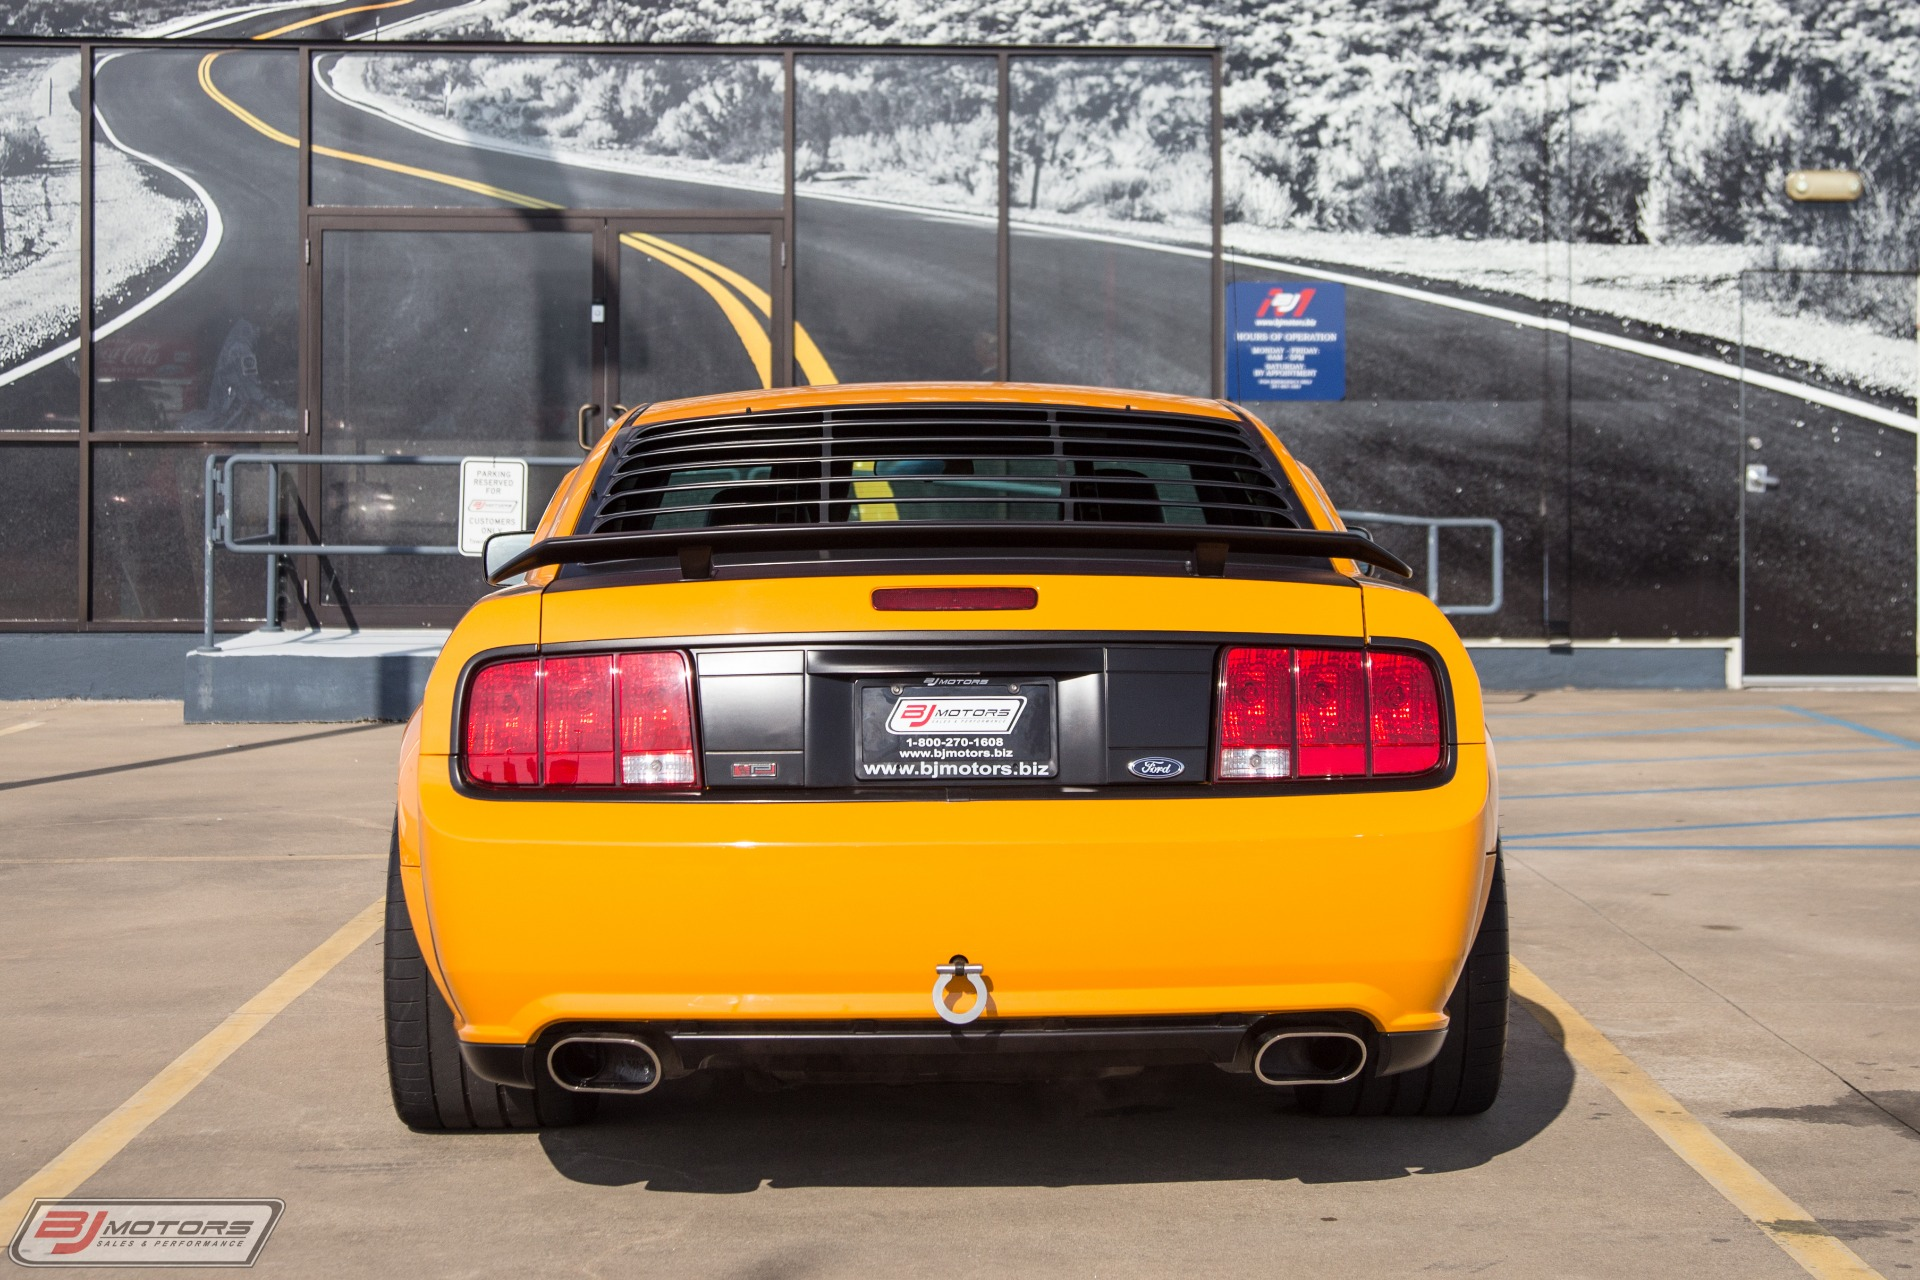 Used-2007-Ford-Mustang-Parnelli-Jones-with-Aluminator-XS-Crate-Engine-Track-Setup